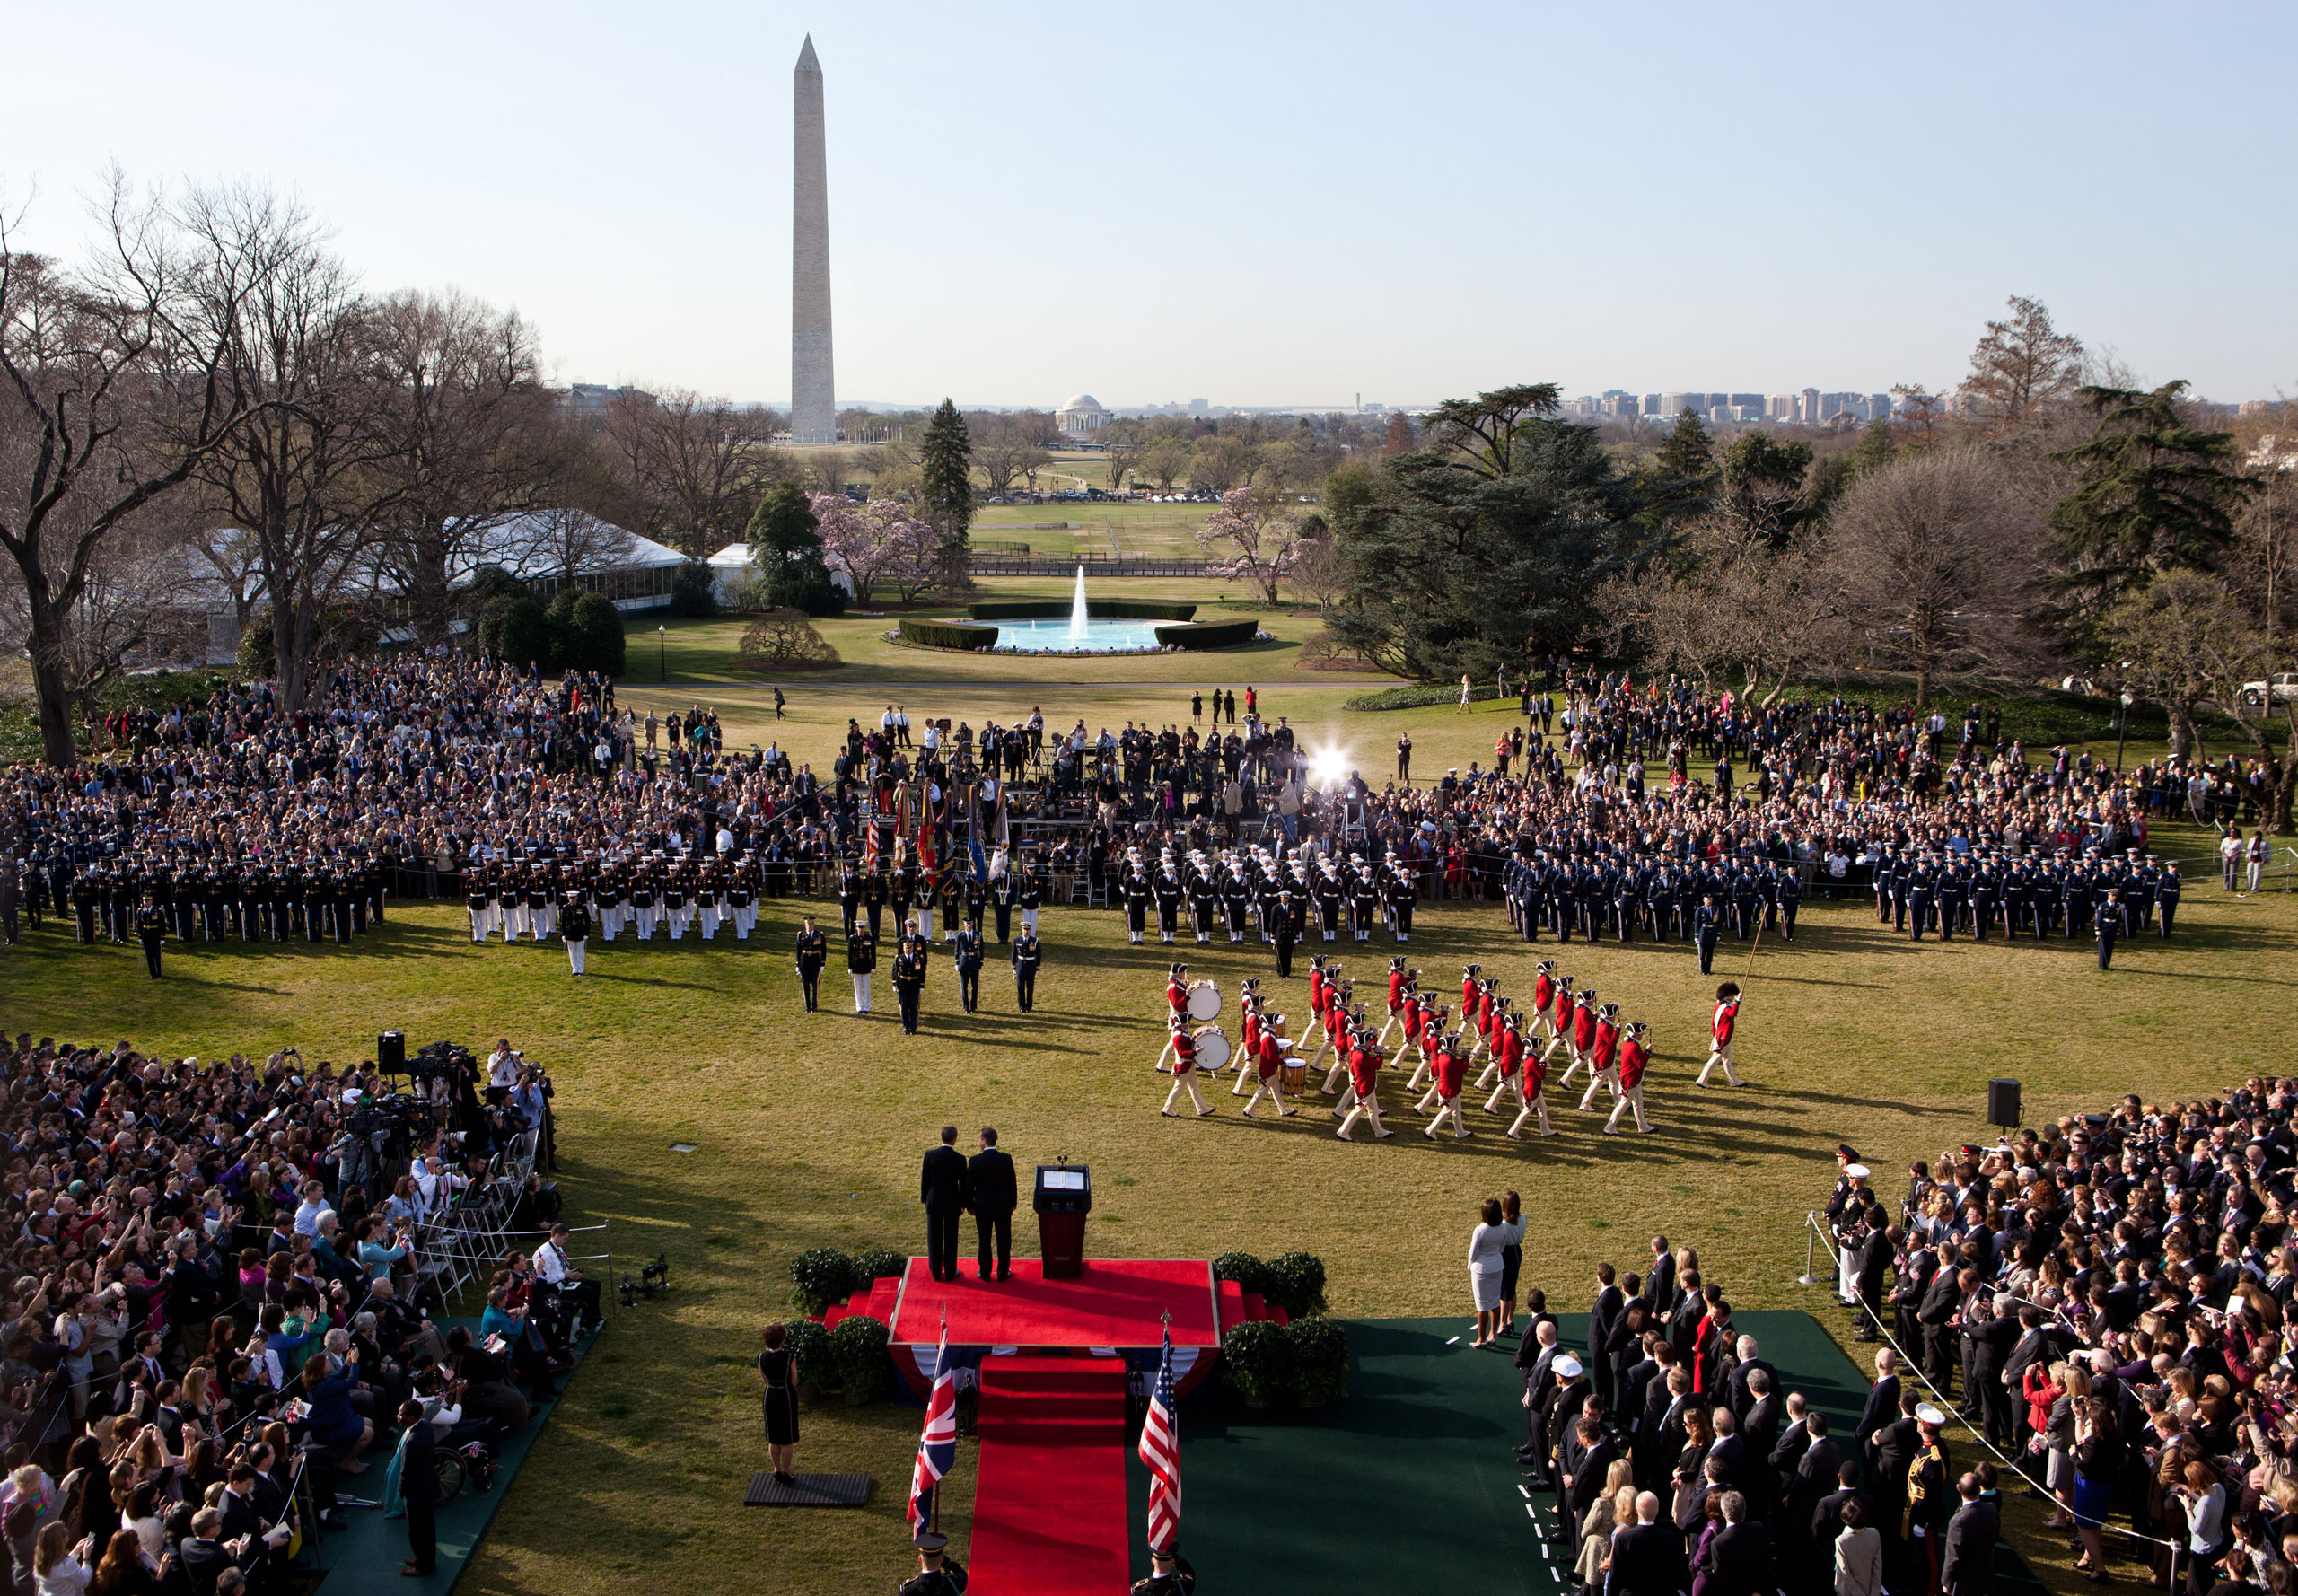 President Barack Obama and Prime Minister David Cameron of the United Kingdom watch the U.S. Army Fife and Drum Corps pass during the Official Arrival Ceremony on the South Lawn, March 14, 2012.